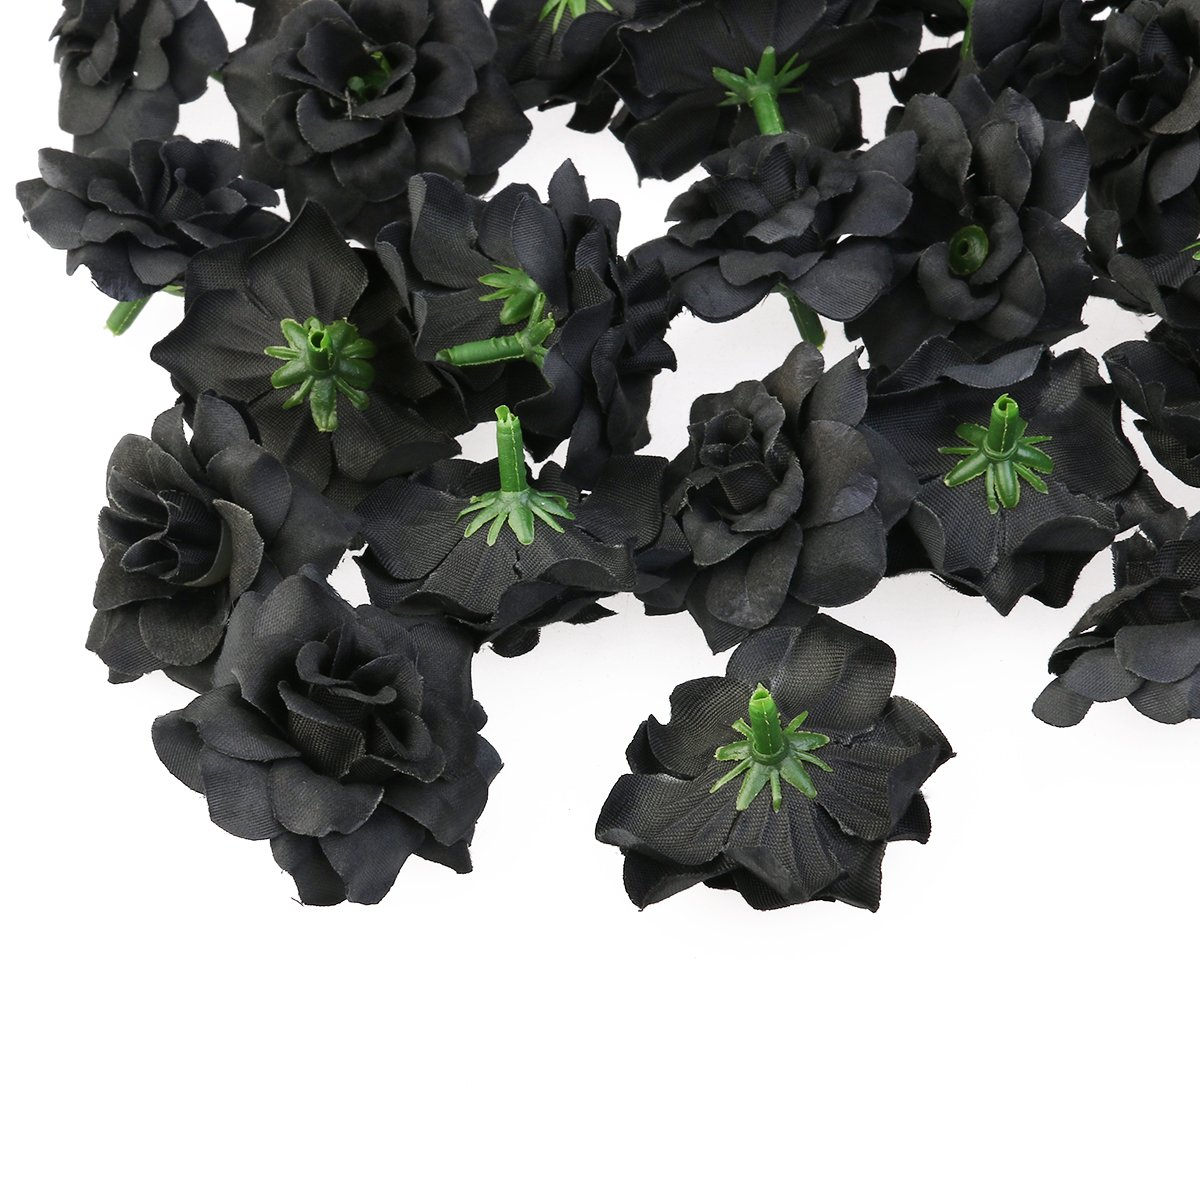 Luoem black artificial flower heads fake rose petals silk flowers luoem black artificial flower heads fake rose petals silk flowers for wedding hat clothes album pack mightylinksfo